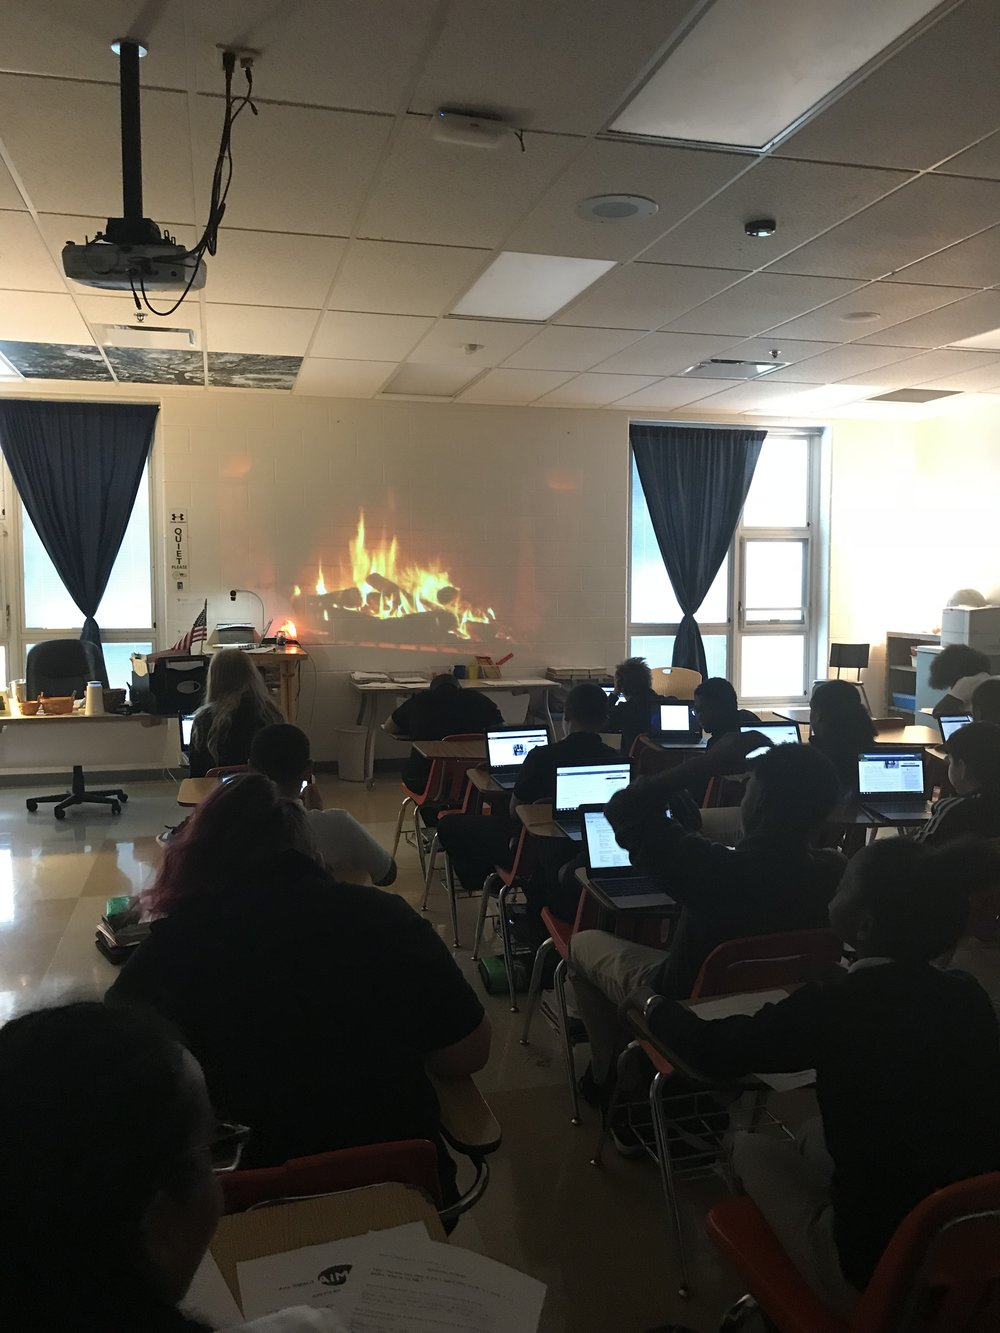 Mrs. Clarks students working hard on a rainy day in front of a roaring fire